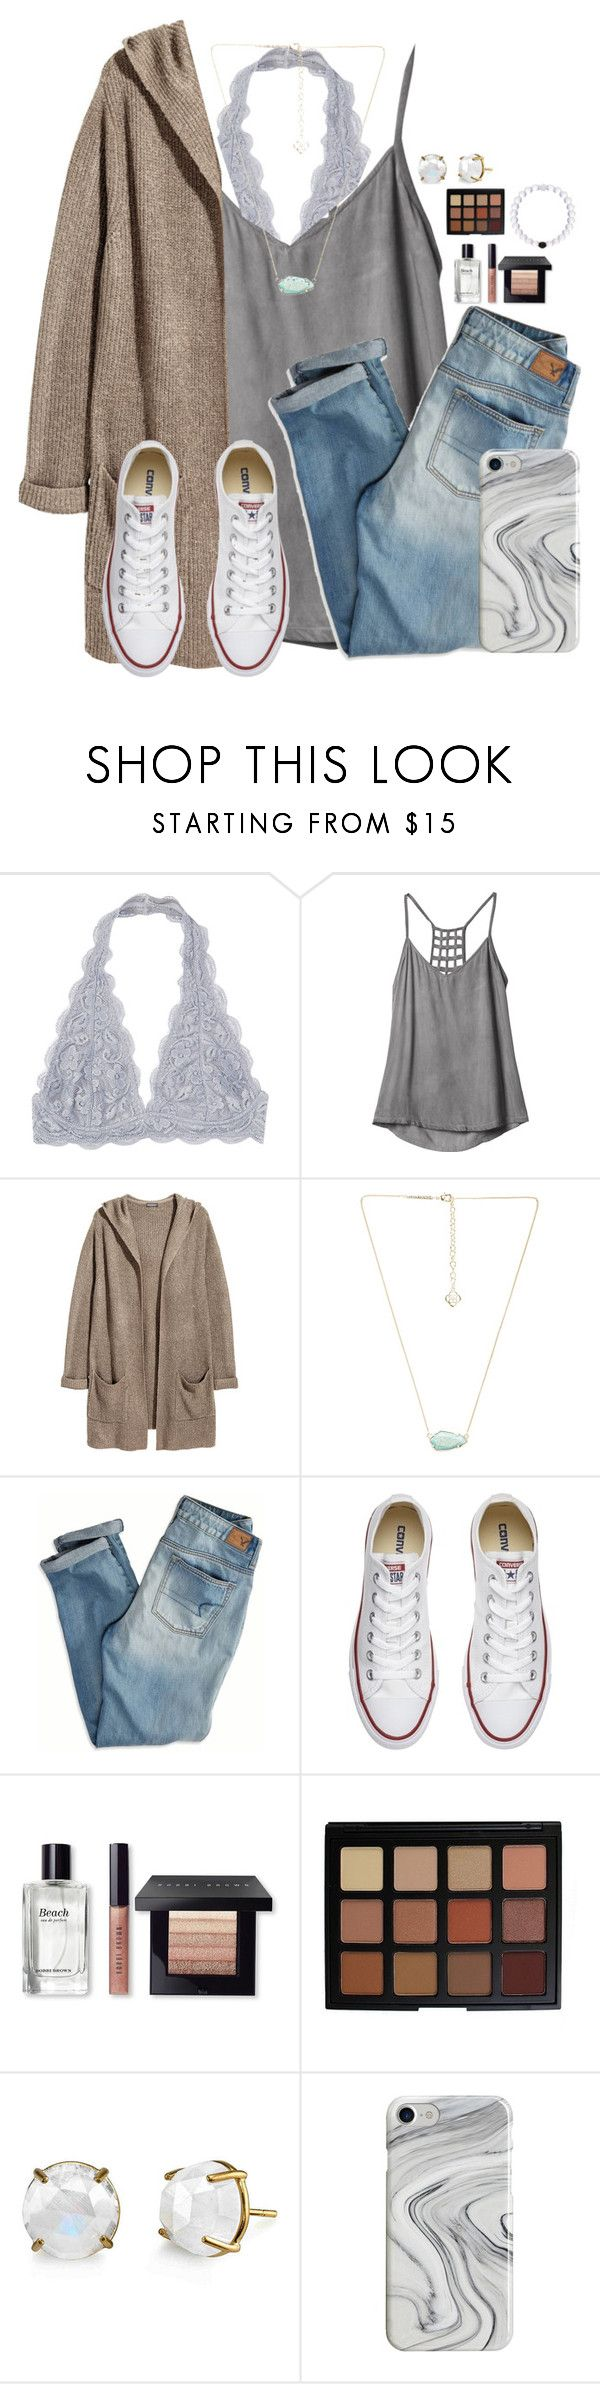 """Went to eat some crepes and go to the farmers market"" by victoriaann34 ❤ liked on Polyvore featuring RVCA, H&M, Kendra Scott, American Eagle Outfitters, Converse, Bobbi Brown Cosmetics, Morphe, Irene Neuwirth and Recover"